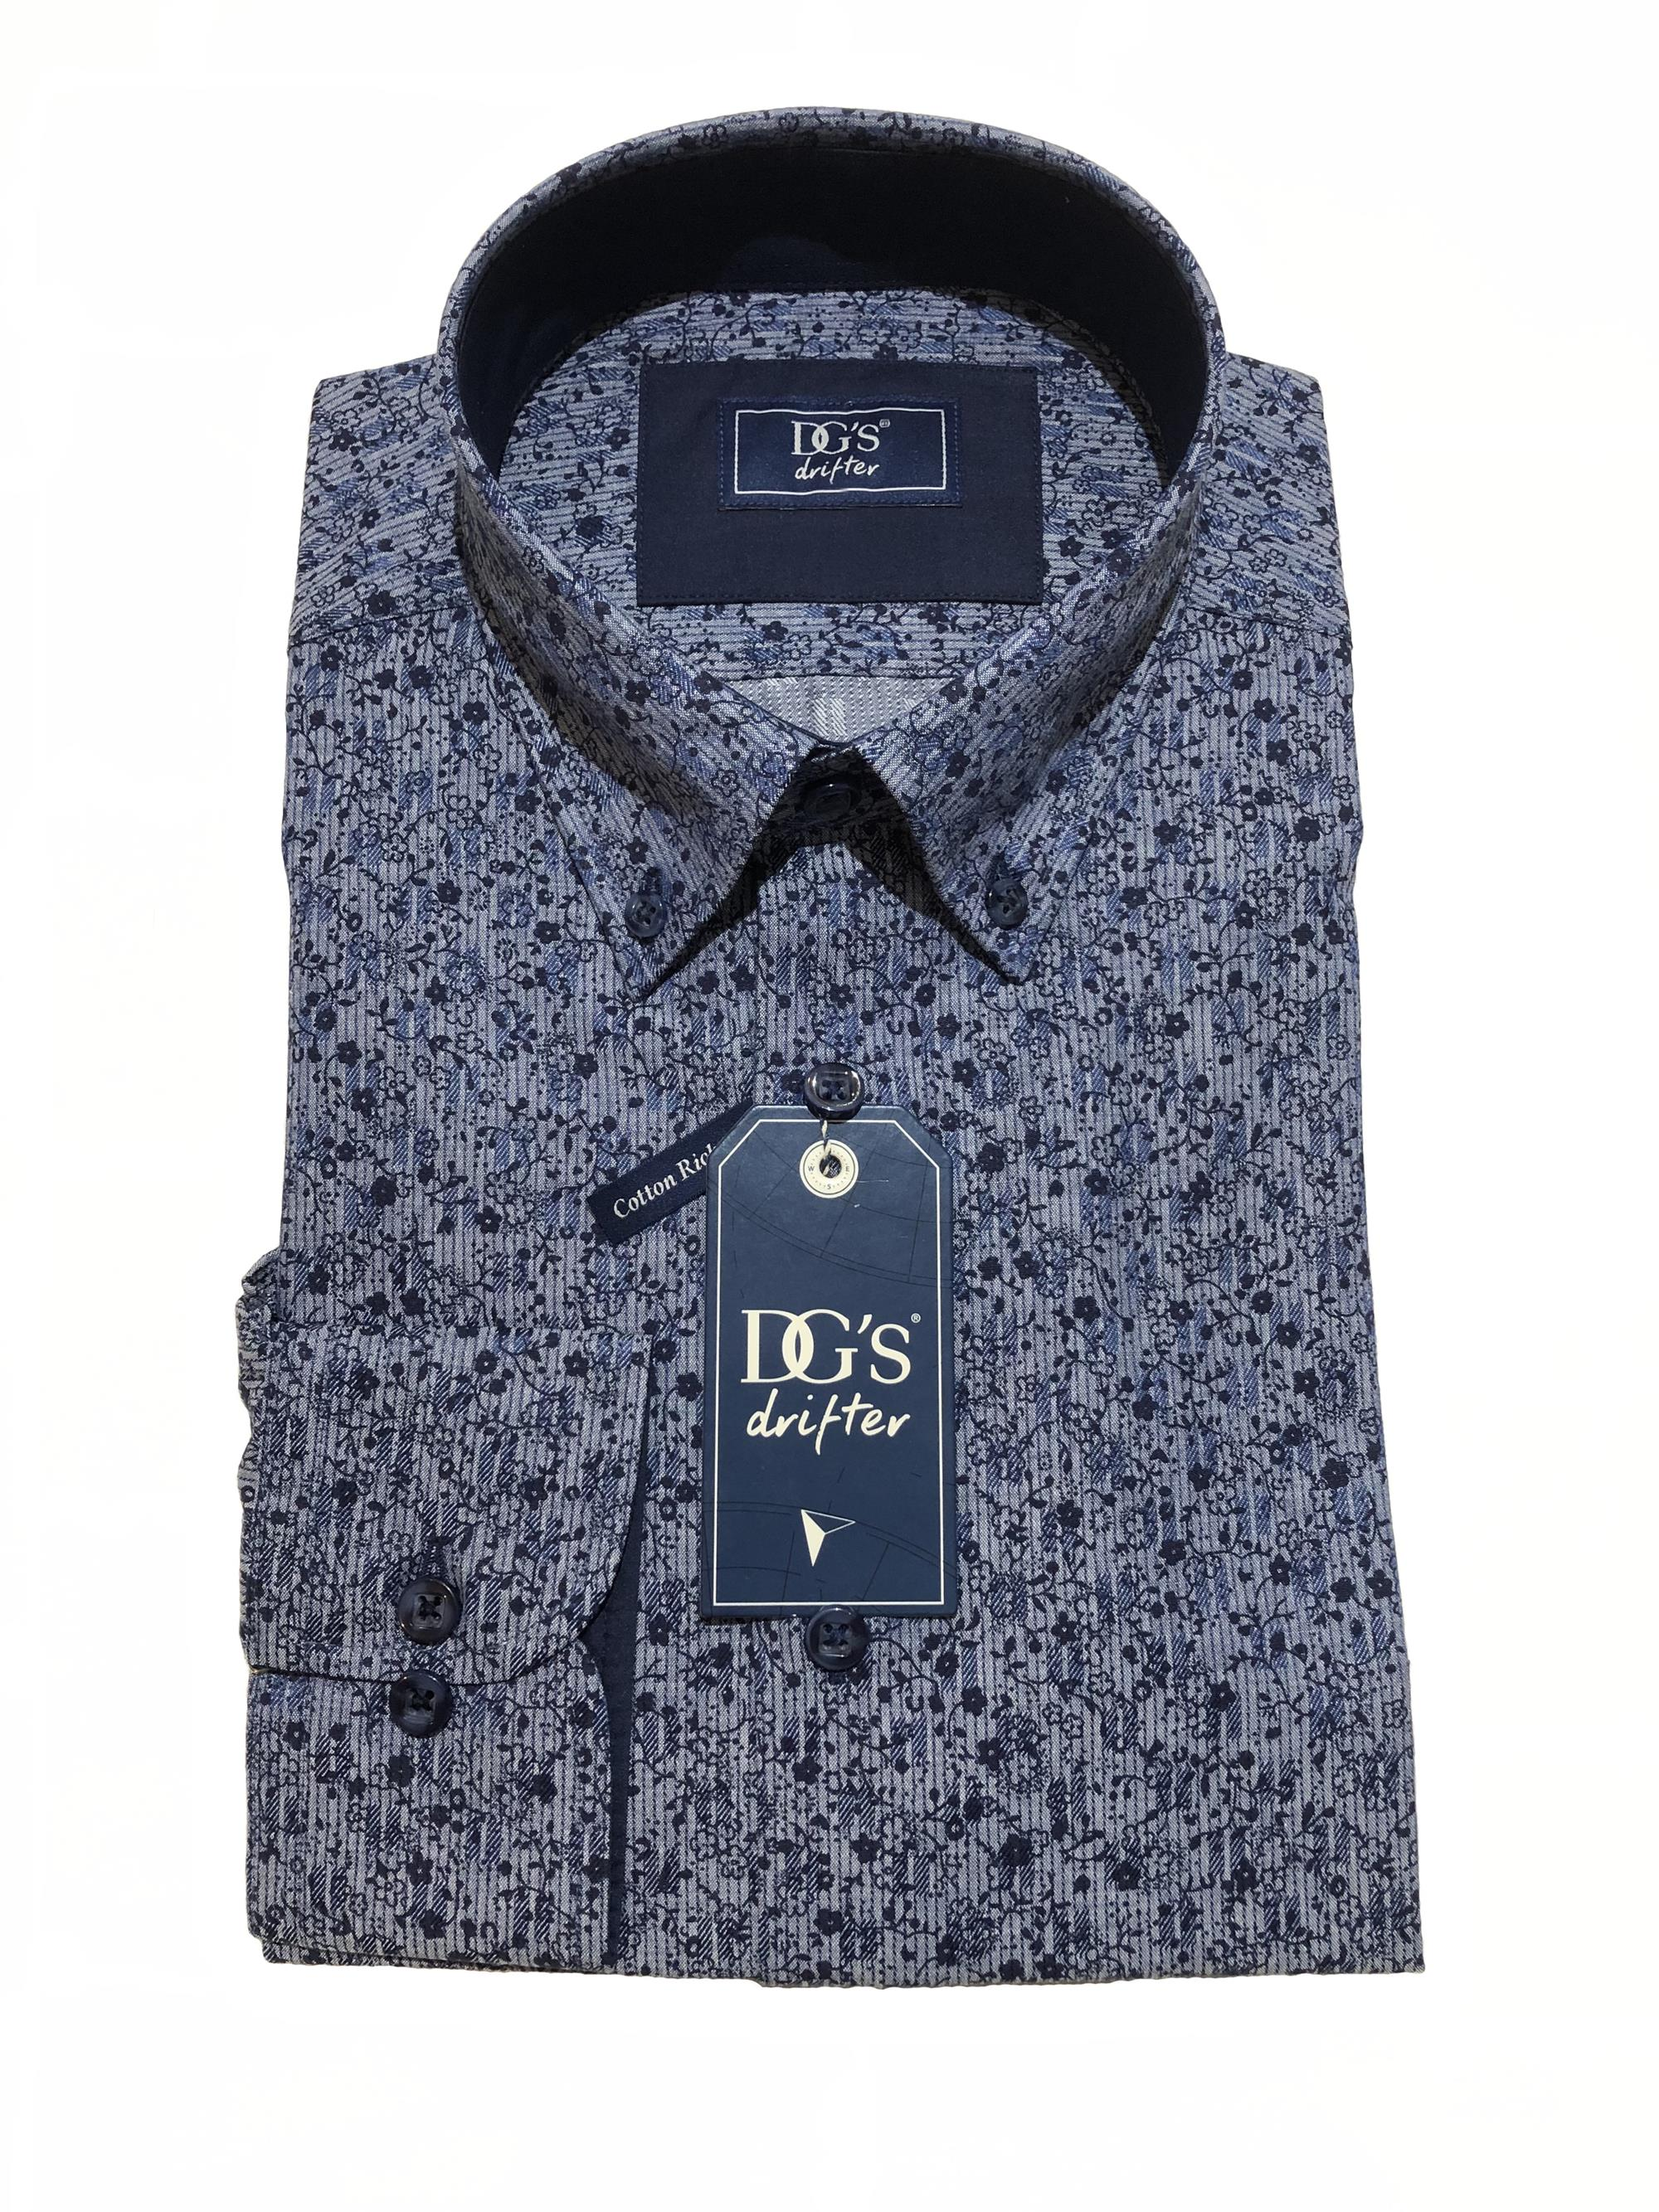 long sleeve patterned shirt (mid blue / navy)